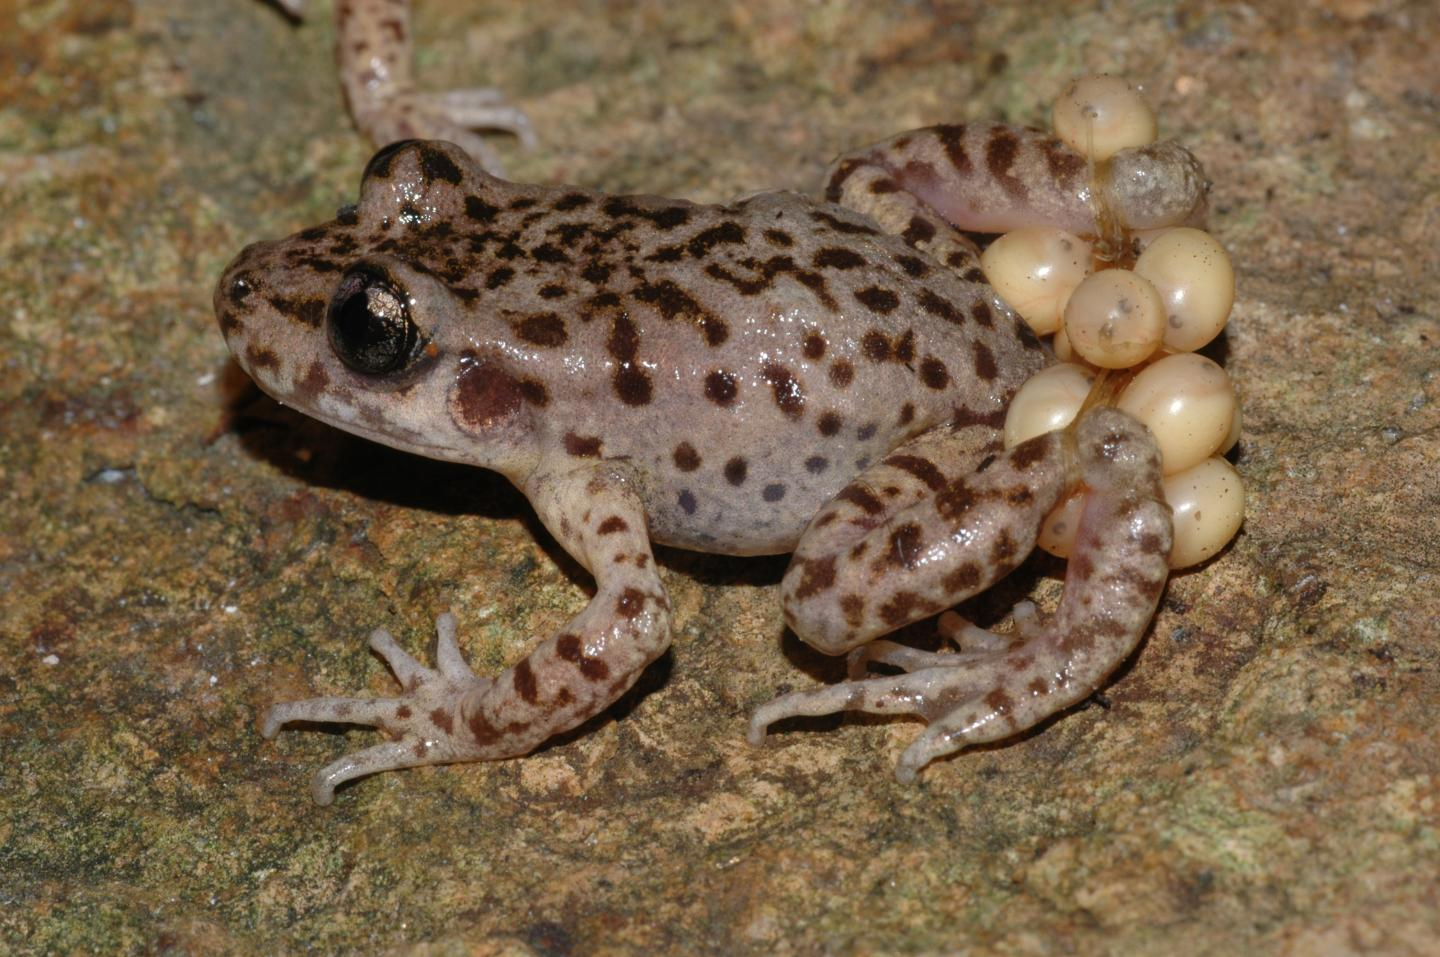 Mallorcan Midwife Toad (1 of 3)